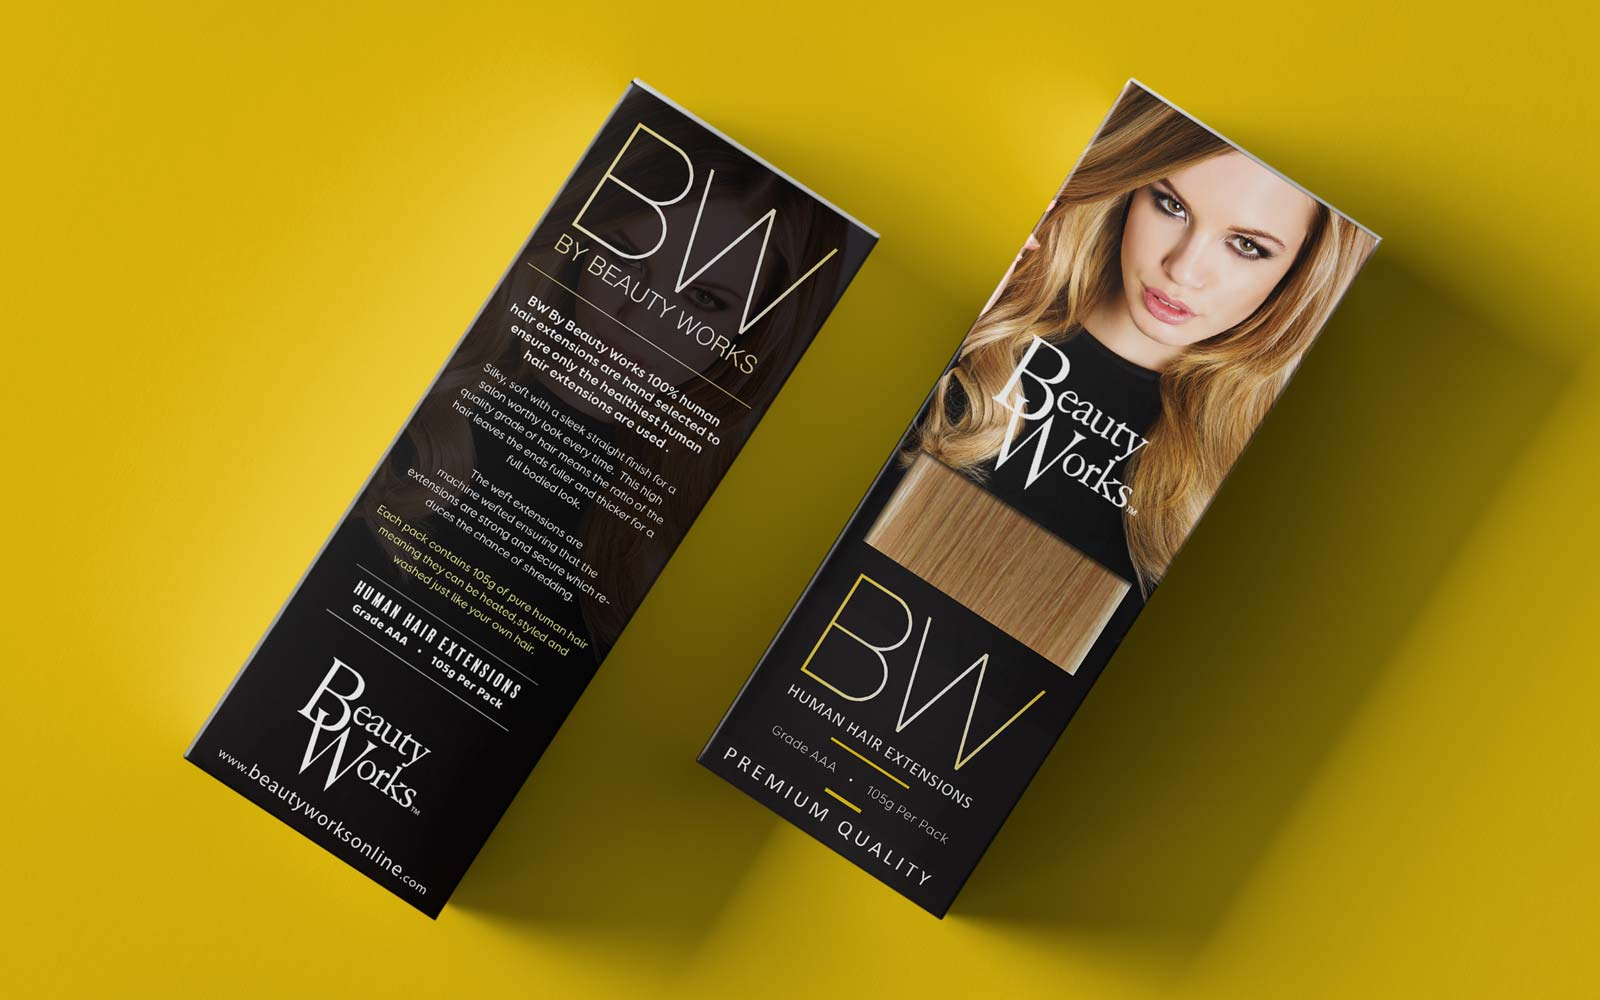 beauty works BW Packaging design